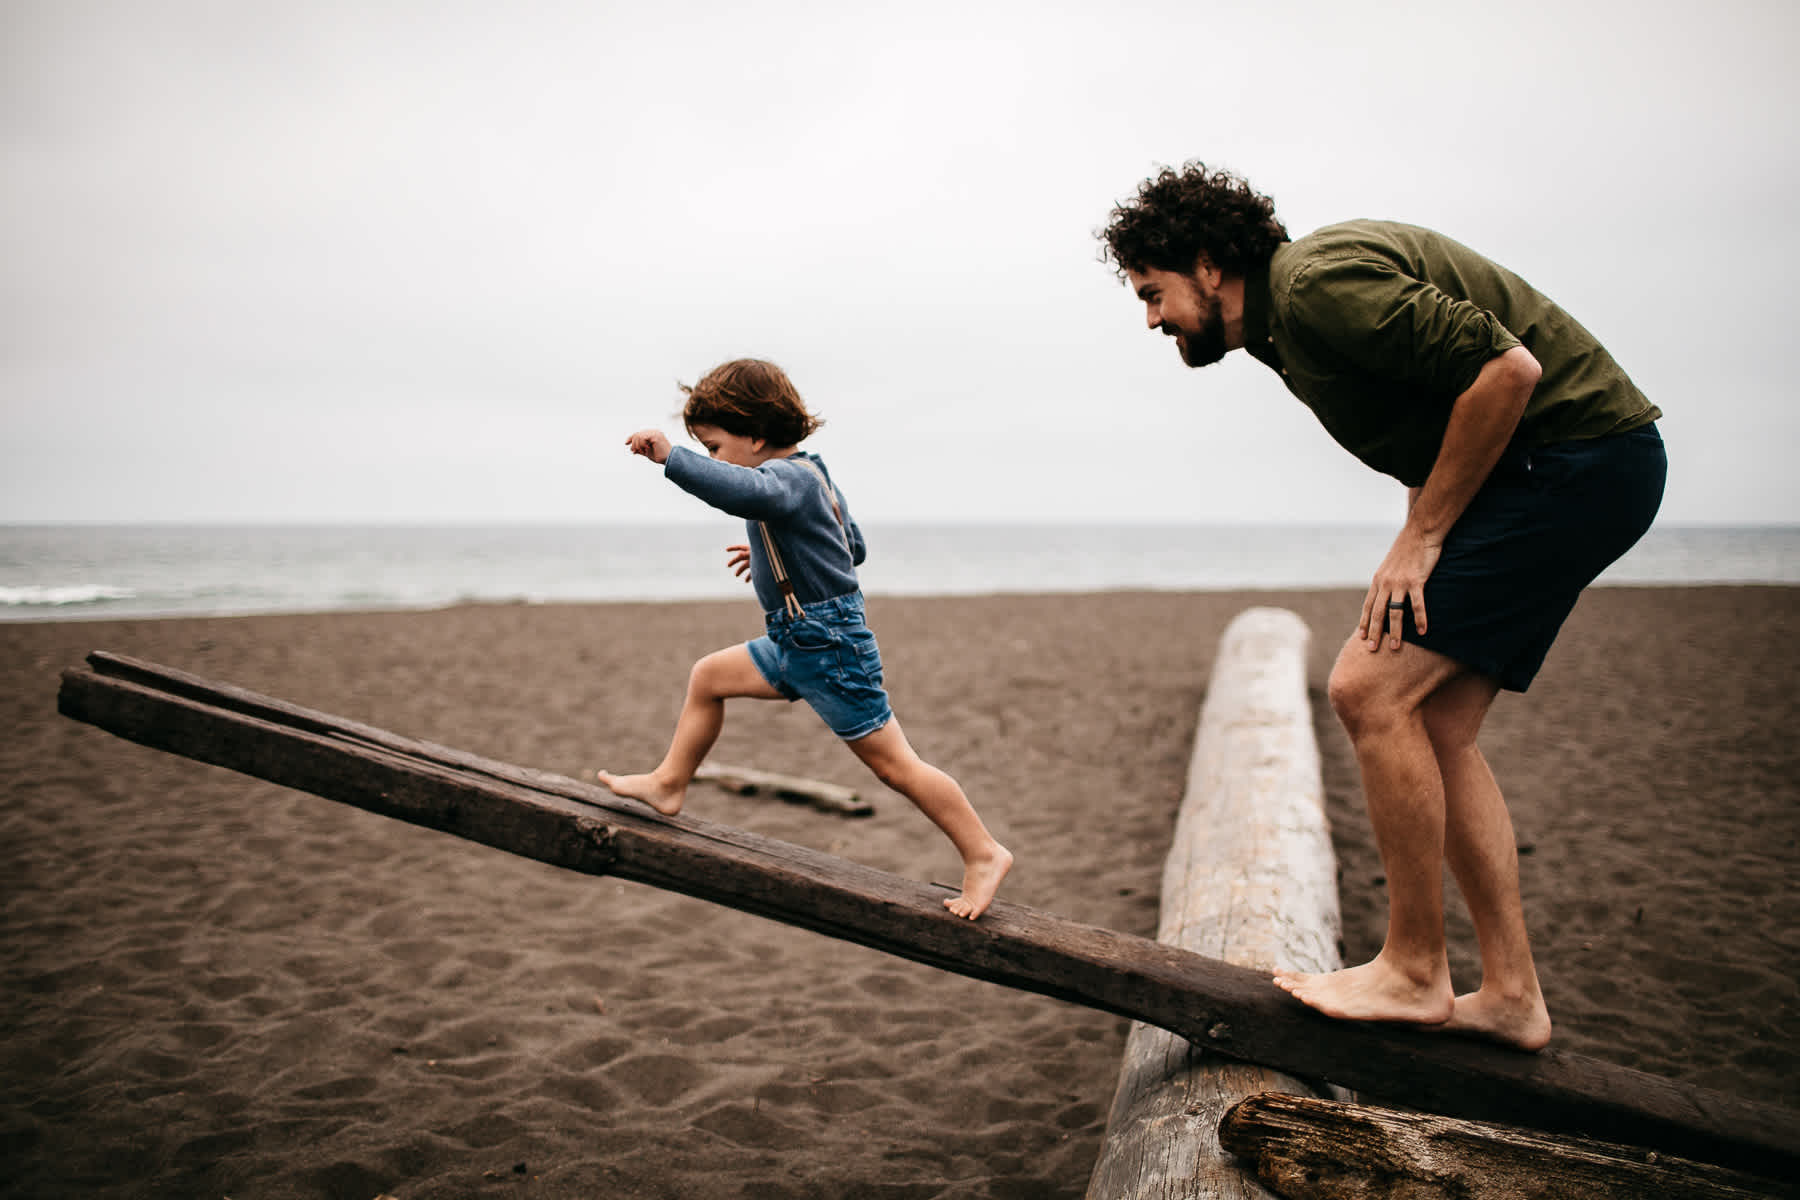 rode-beach-summer-gloomy-family-session-4